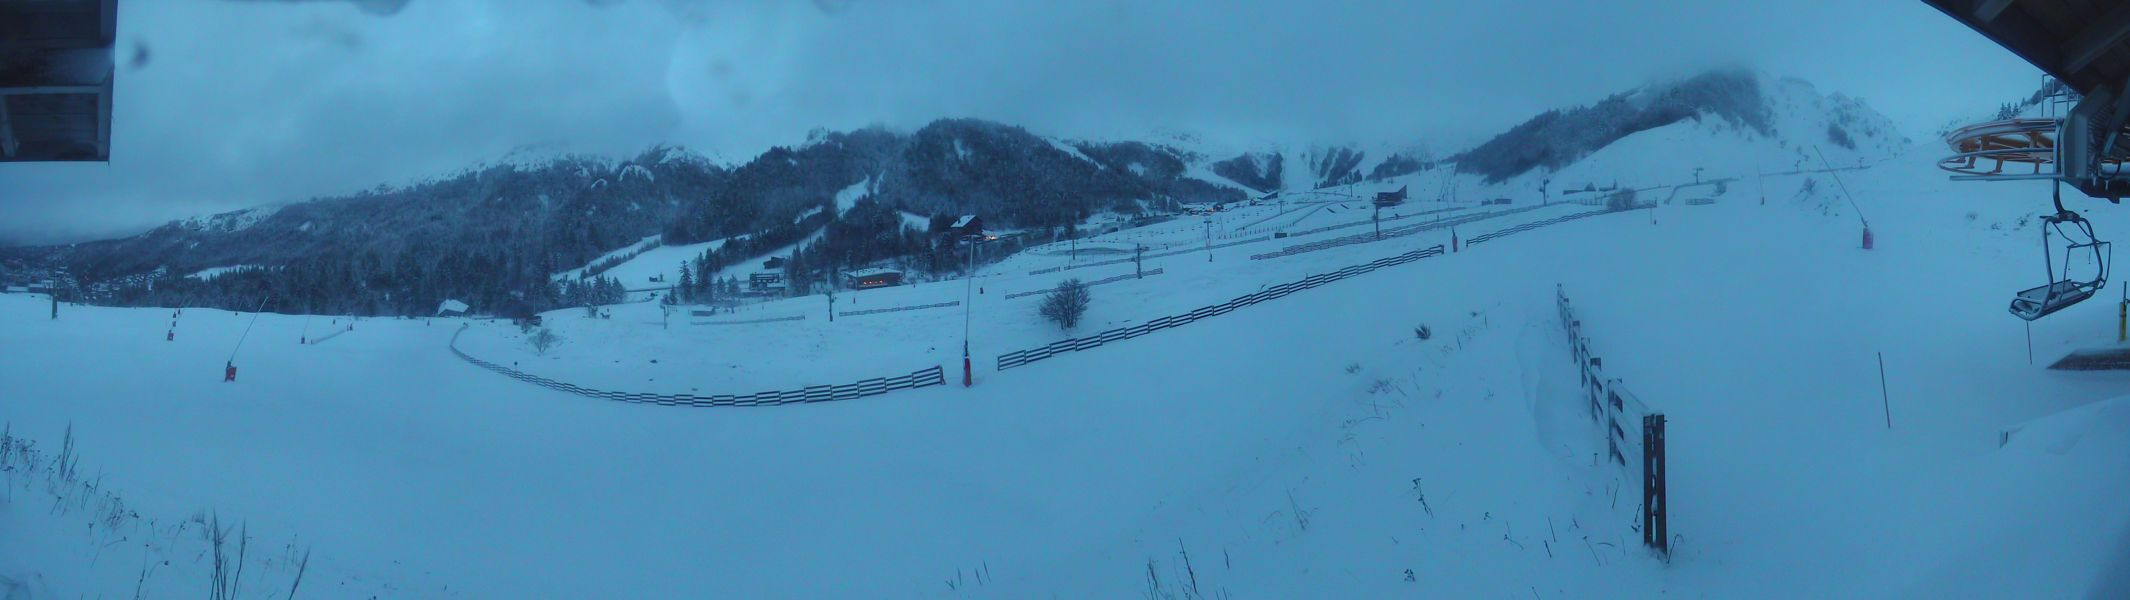 Webcam Panoramique